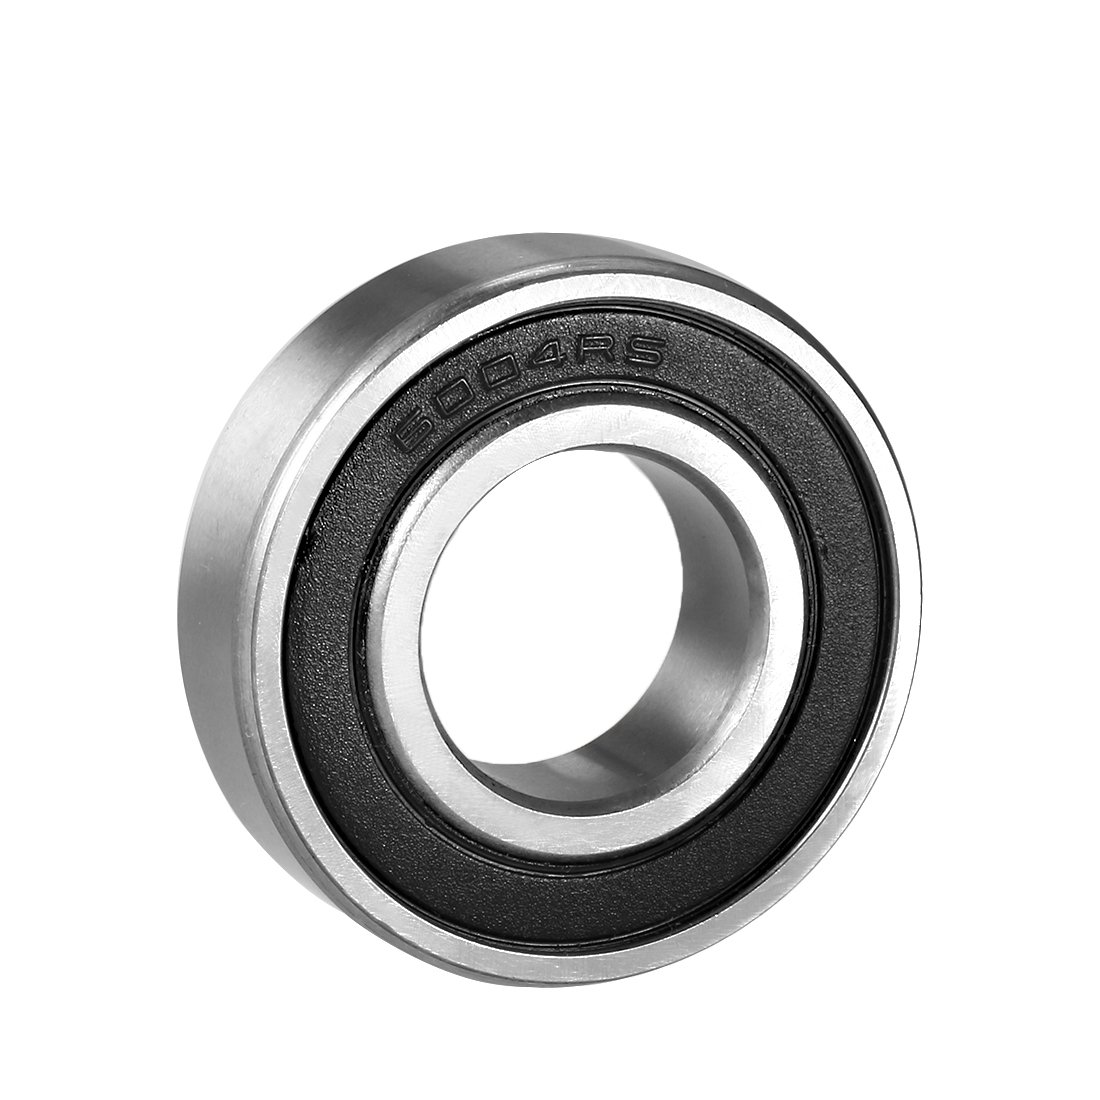 6004-2RS Double Side Sealed Ball Bearing 20mm x 42mm x 12mm LW